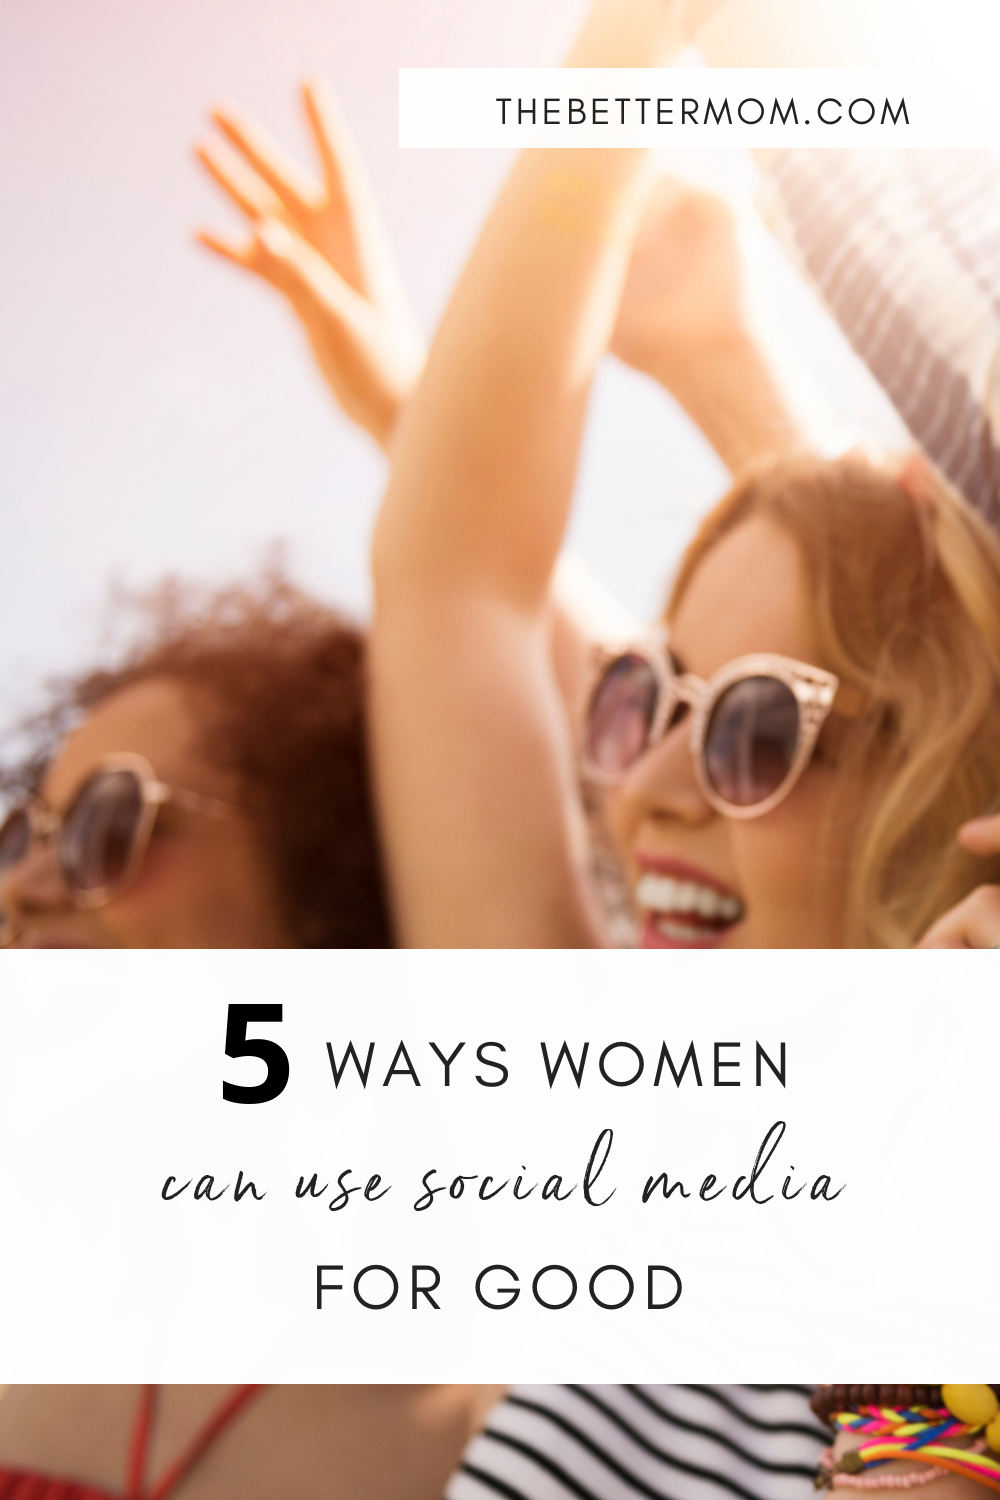 How do you engage with social media? Like it or not, women everywhere reside on internet community platforms—and as Christian women, we have a tremendous opportunity to share God's love within them. Here are some practical tools to start doing that today!